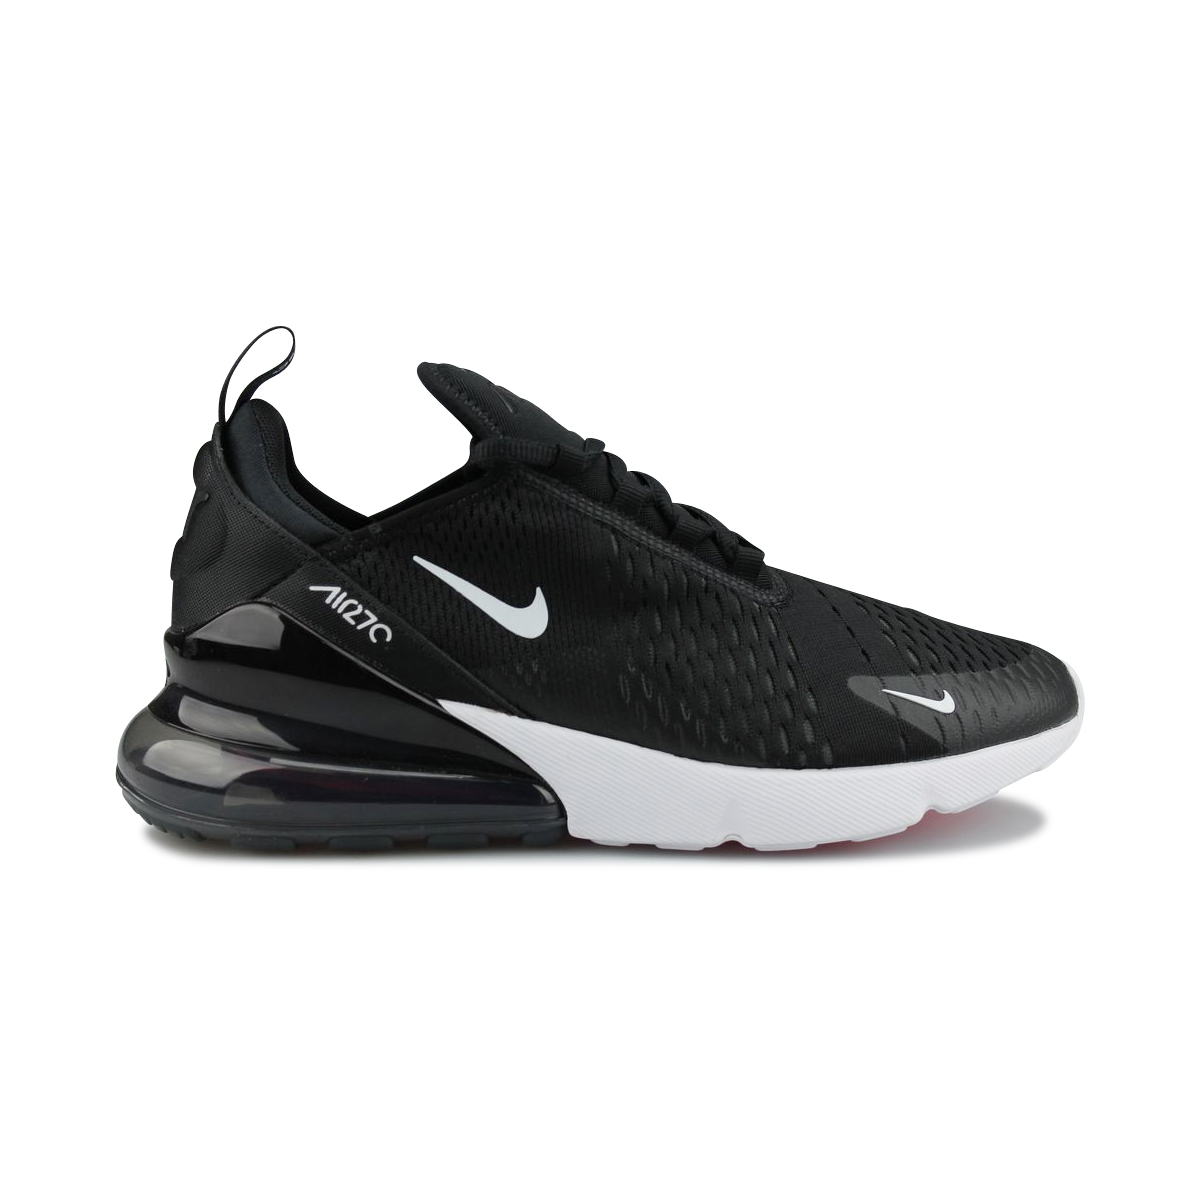 quality design 06f42 d6f25 NIKE AIR MAX 270 NOIR AH8050-002